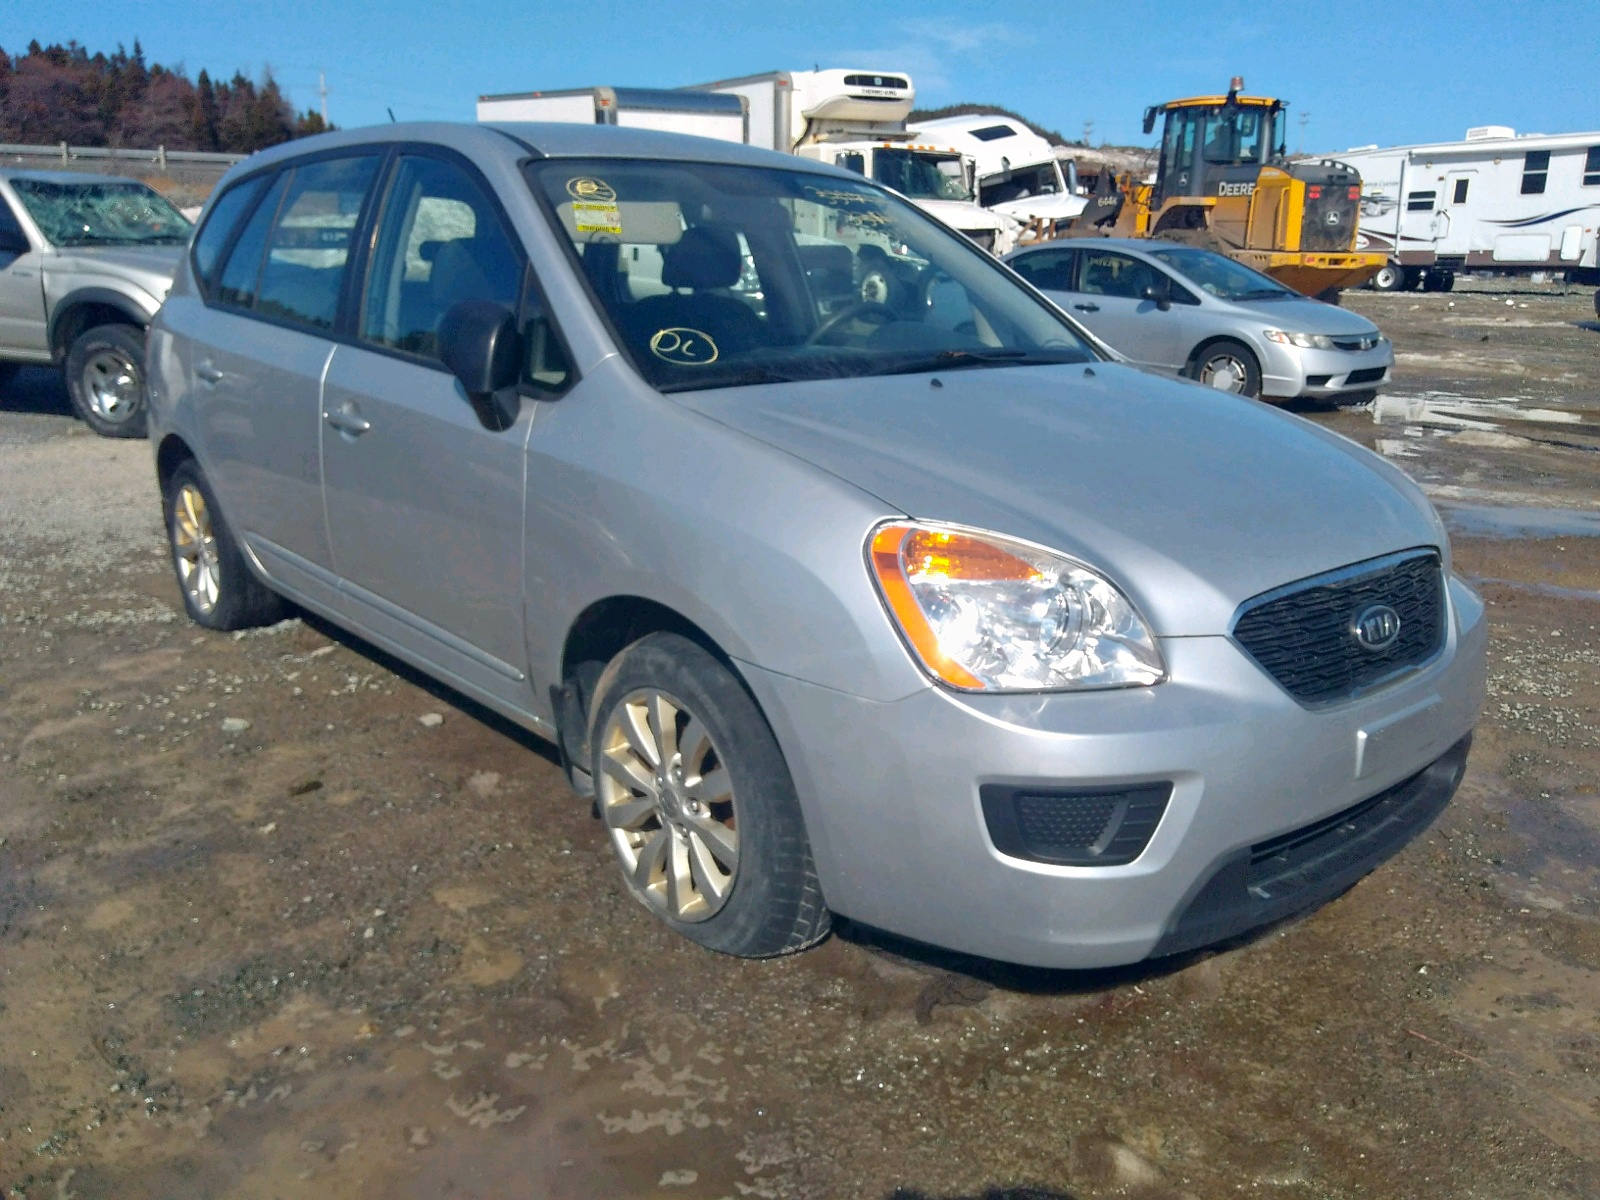 2012 kia rondo for sale at copart cow bay ns lot 33152820 salvagereseller com 2012 kia rondo for sale at copart cow